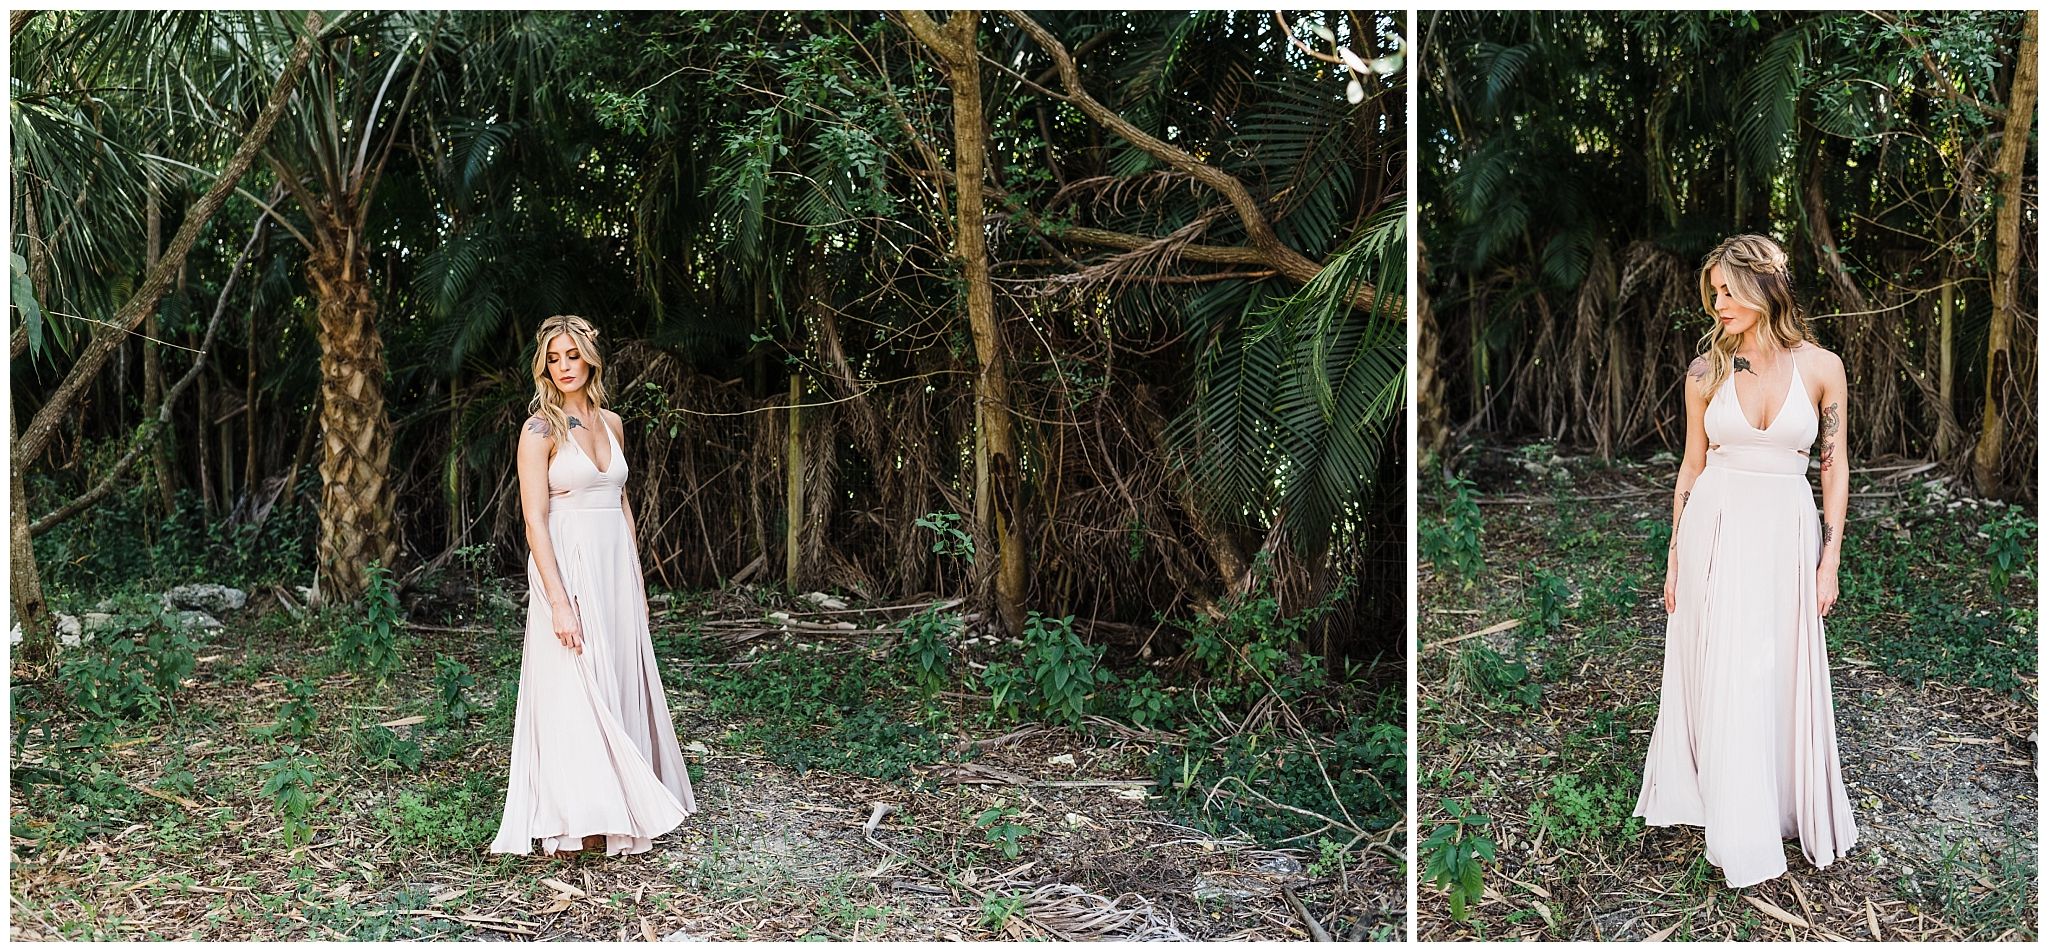 Easterday Creative | Adventurous wedding photographer and visual storyteller | The Peaceful Palm Fashion Editorial